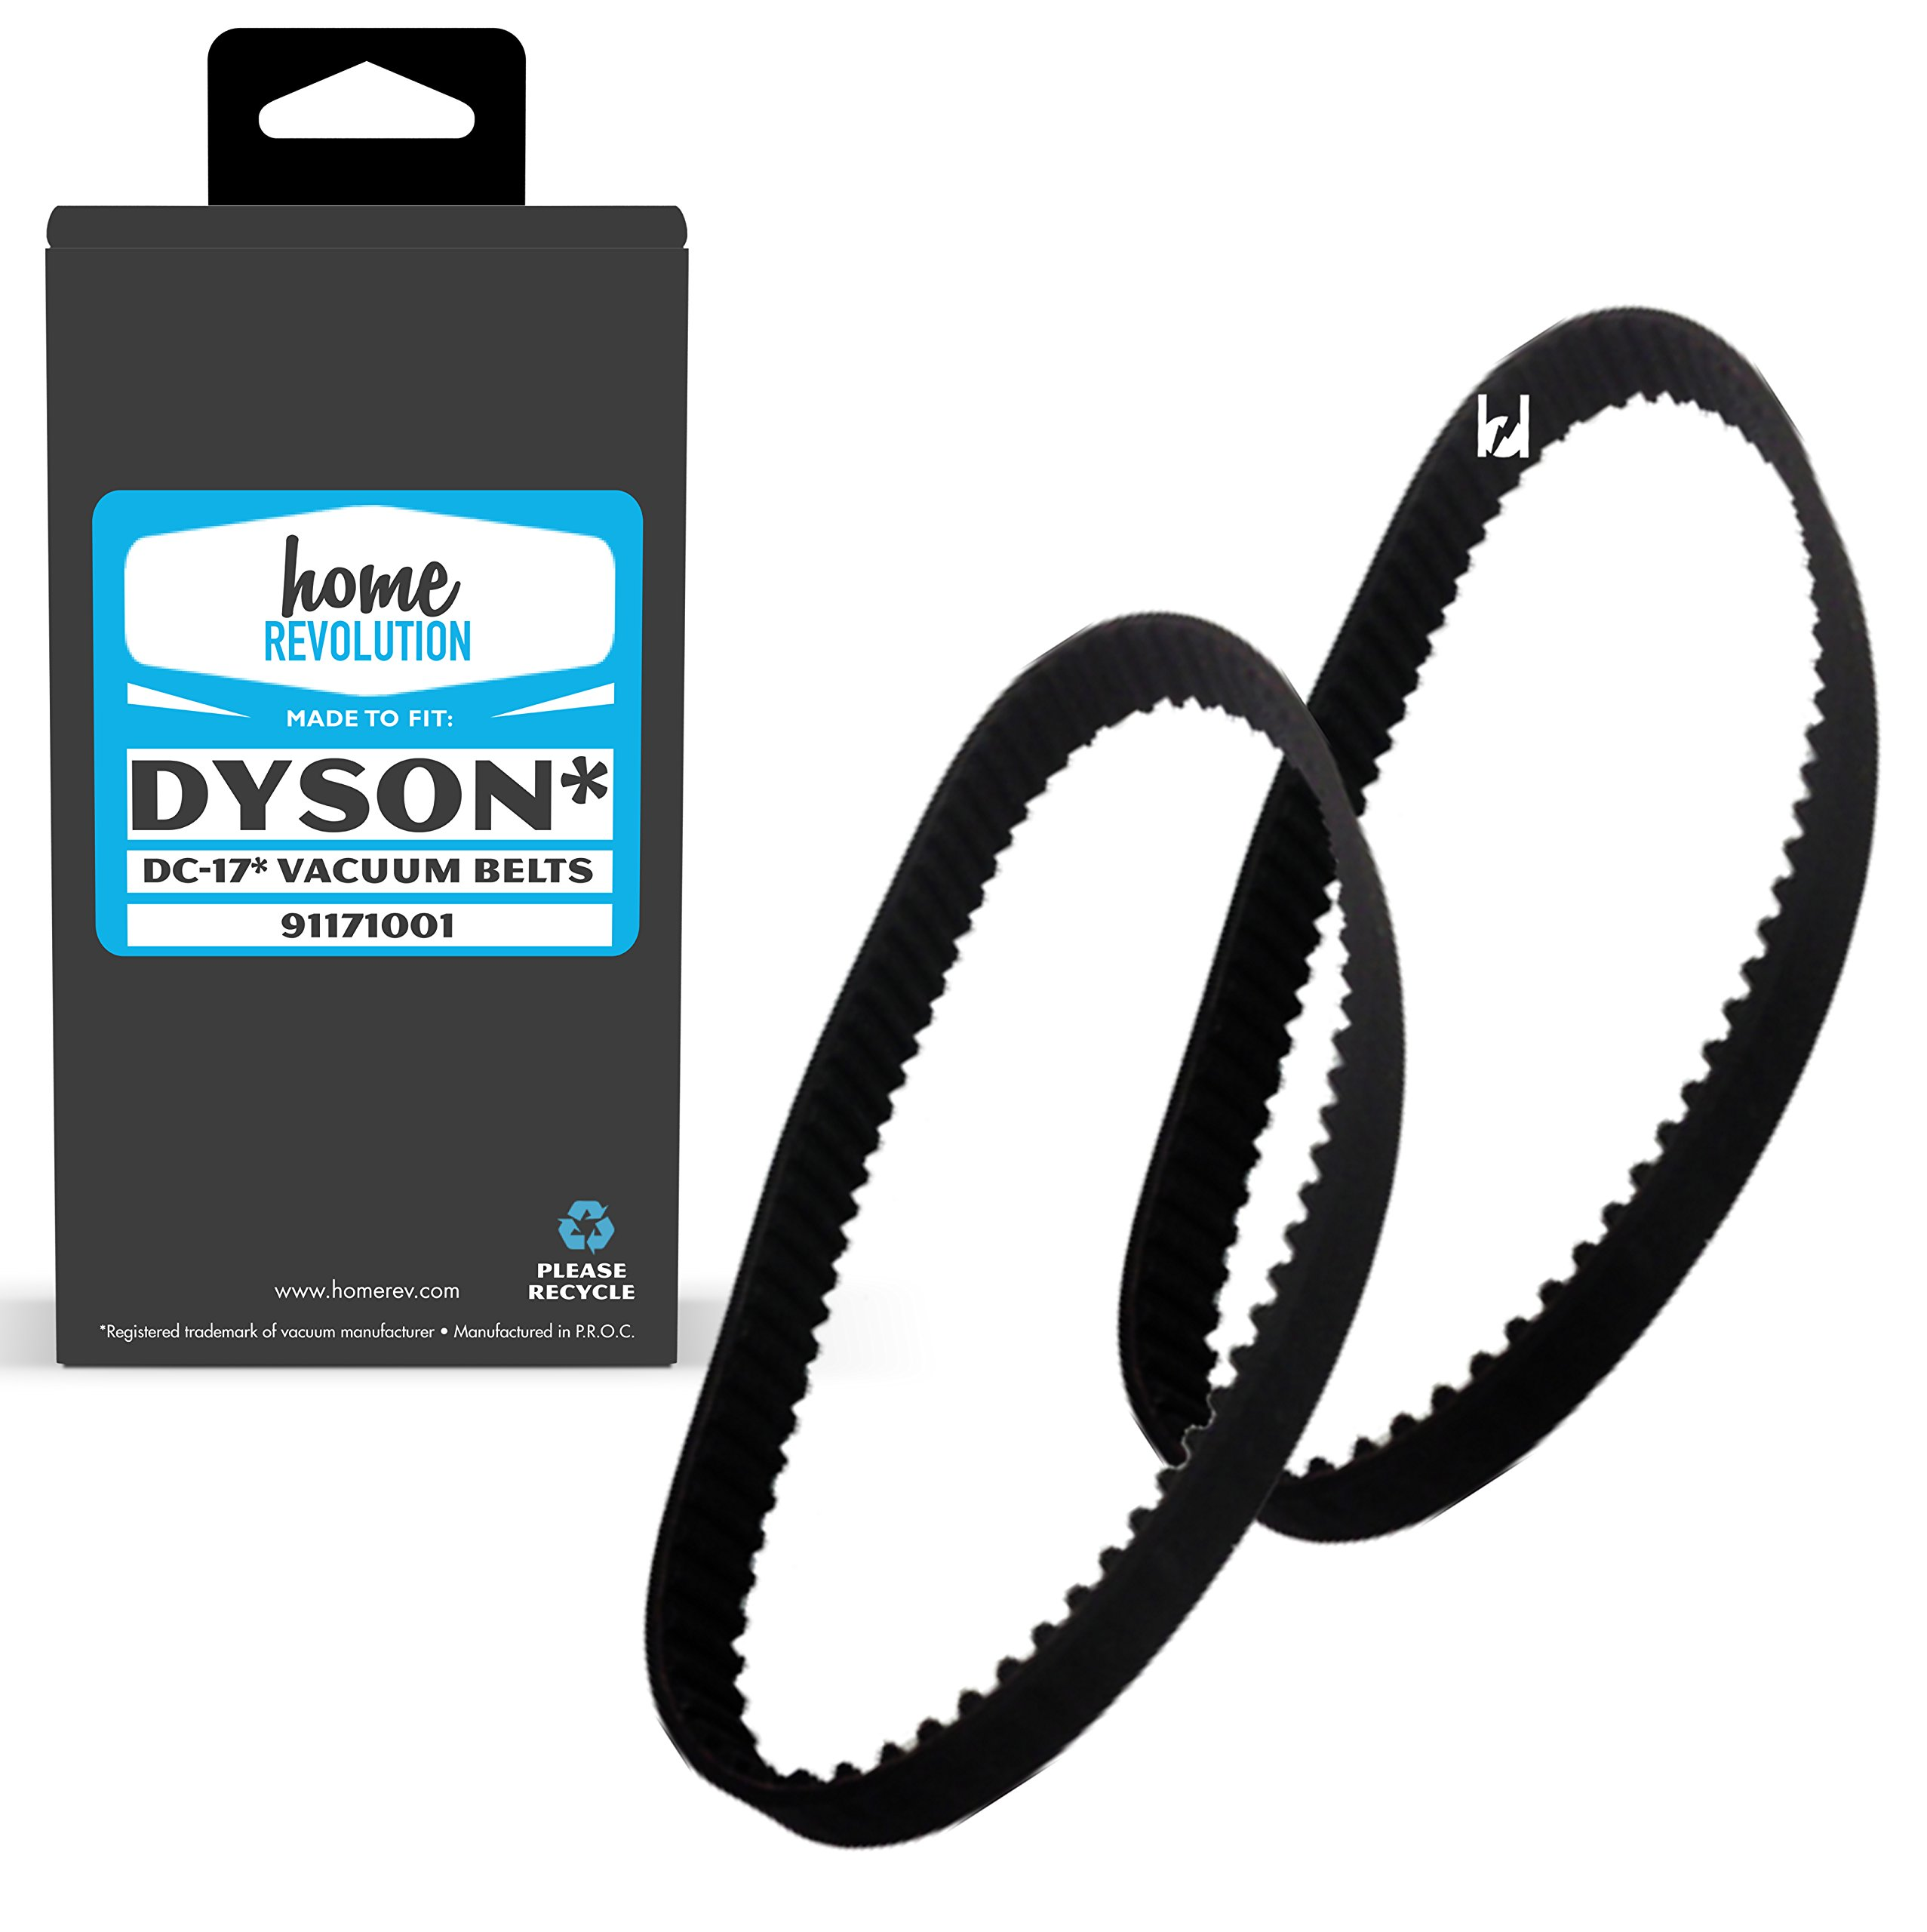 Home Revolution Replacement Vacuum Belt fits Dyson DC17 Animal Cyclone Upright, Asthma & Allergy, and Total Clean vacuum models and Part 911710-01